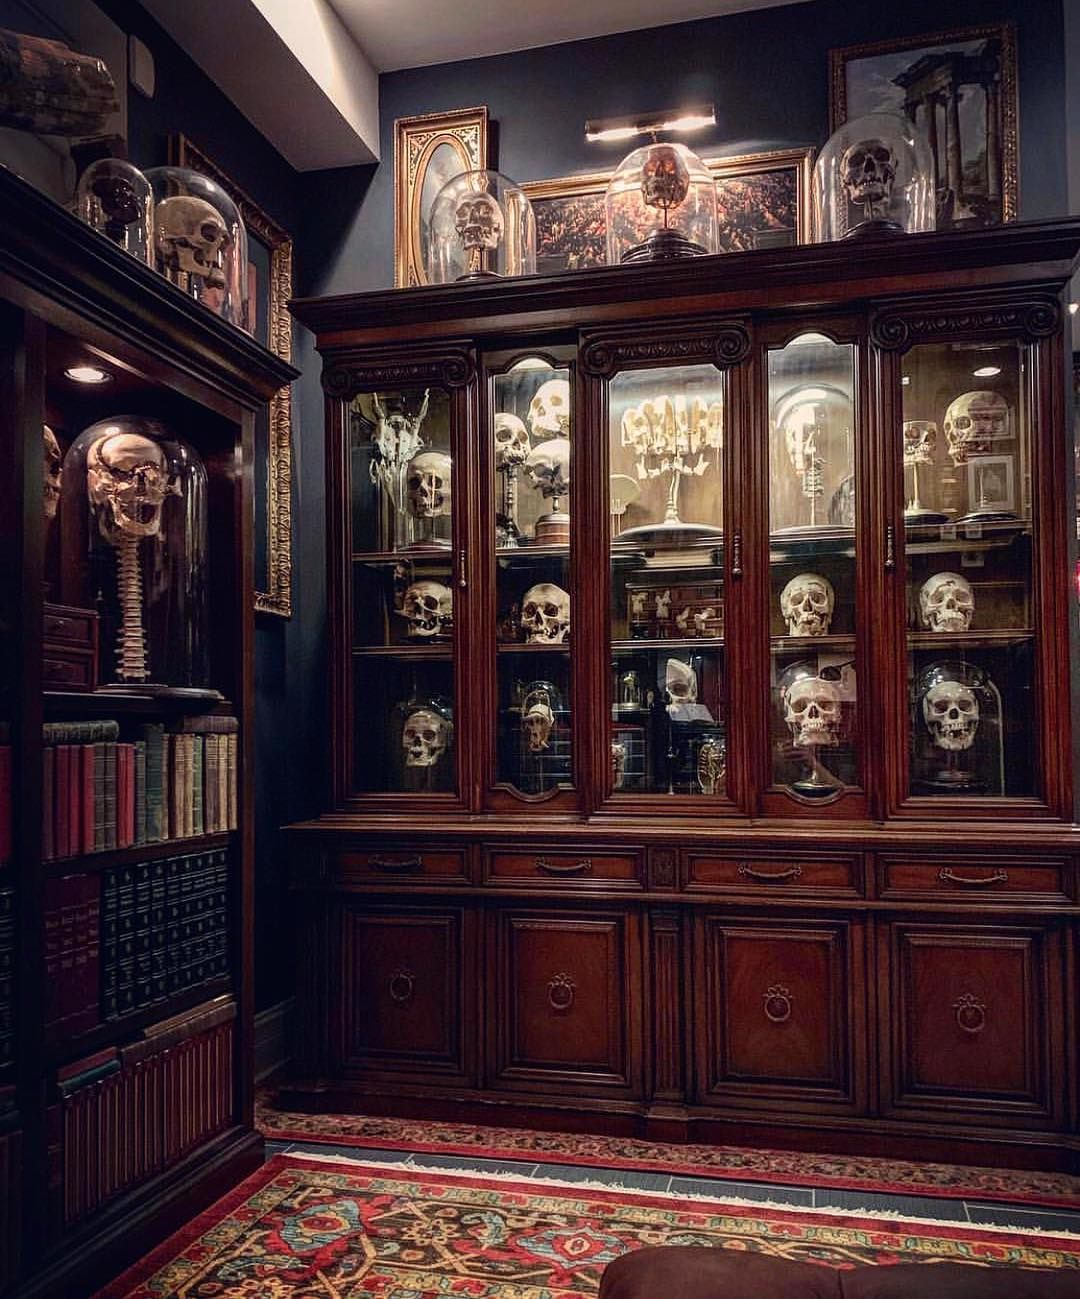 260 best images about Halloween - Macabre Decor on ... |Macabre Interiors